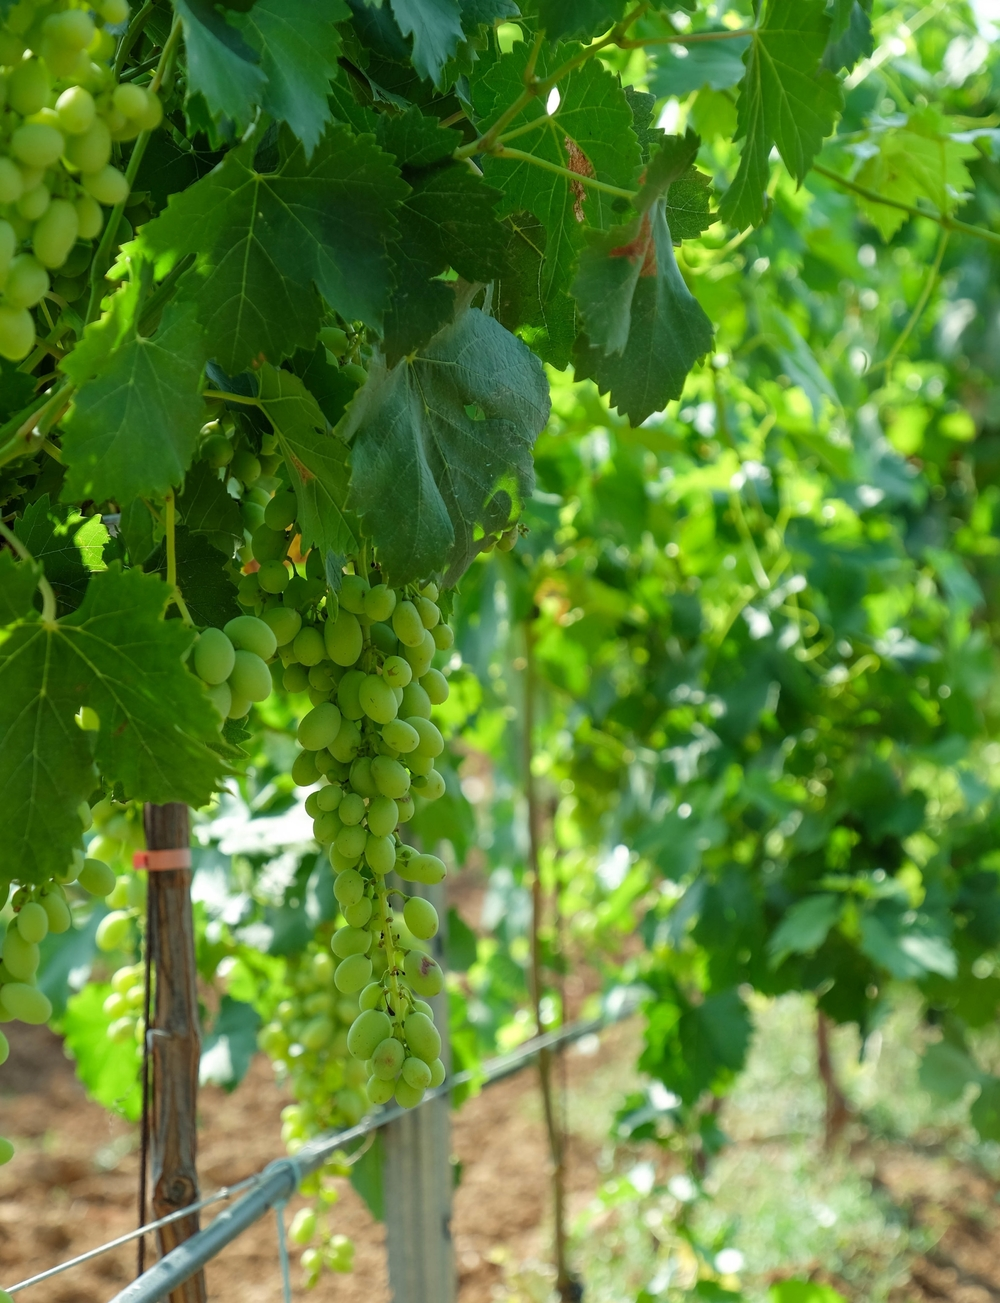 LaurenSchwaiger-Life-Style-Travel-Blog-Mallorca-Spain-Grapes-on-the-vine.jpg